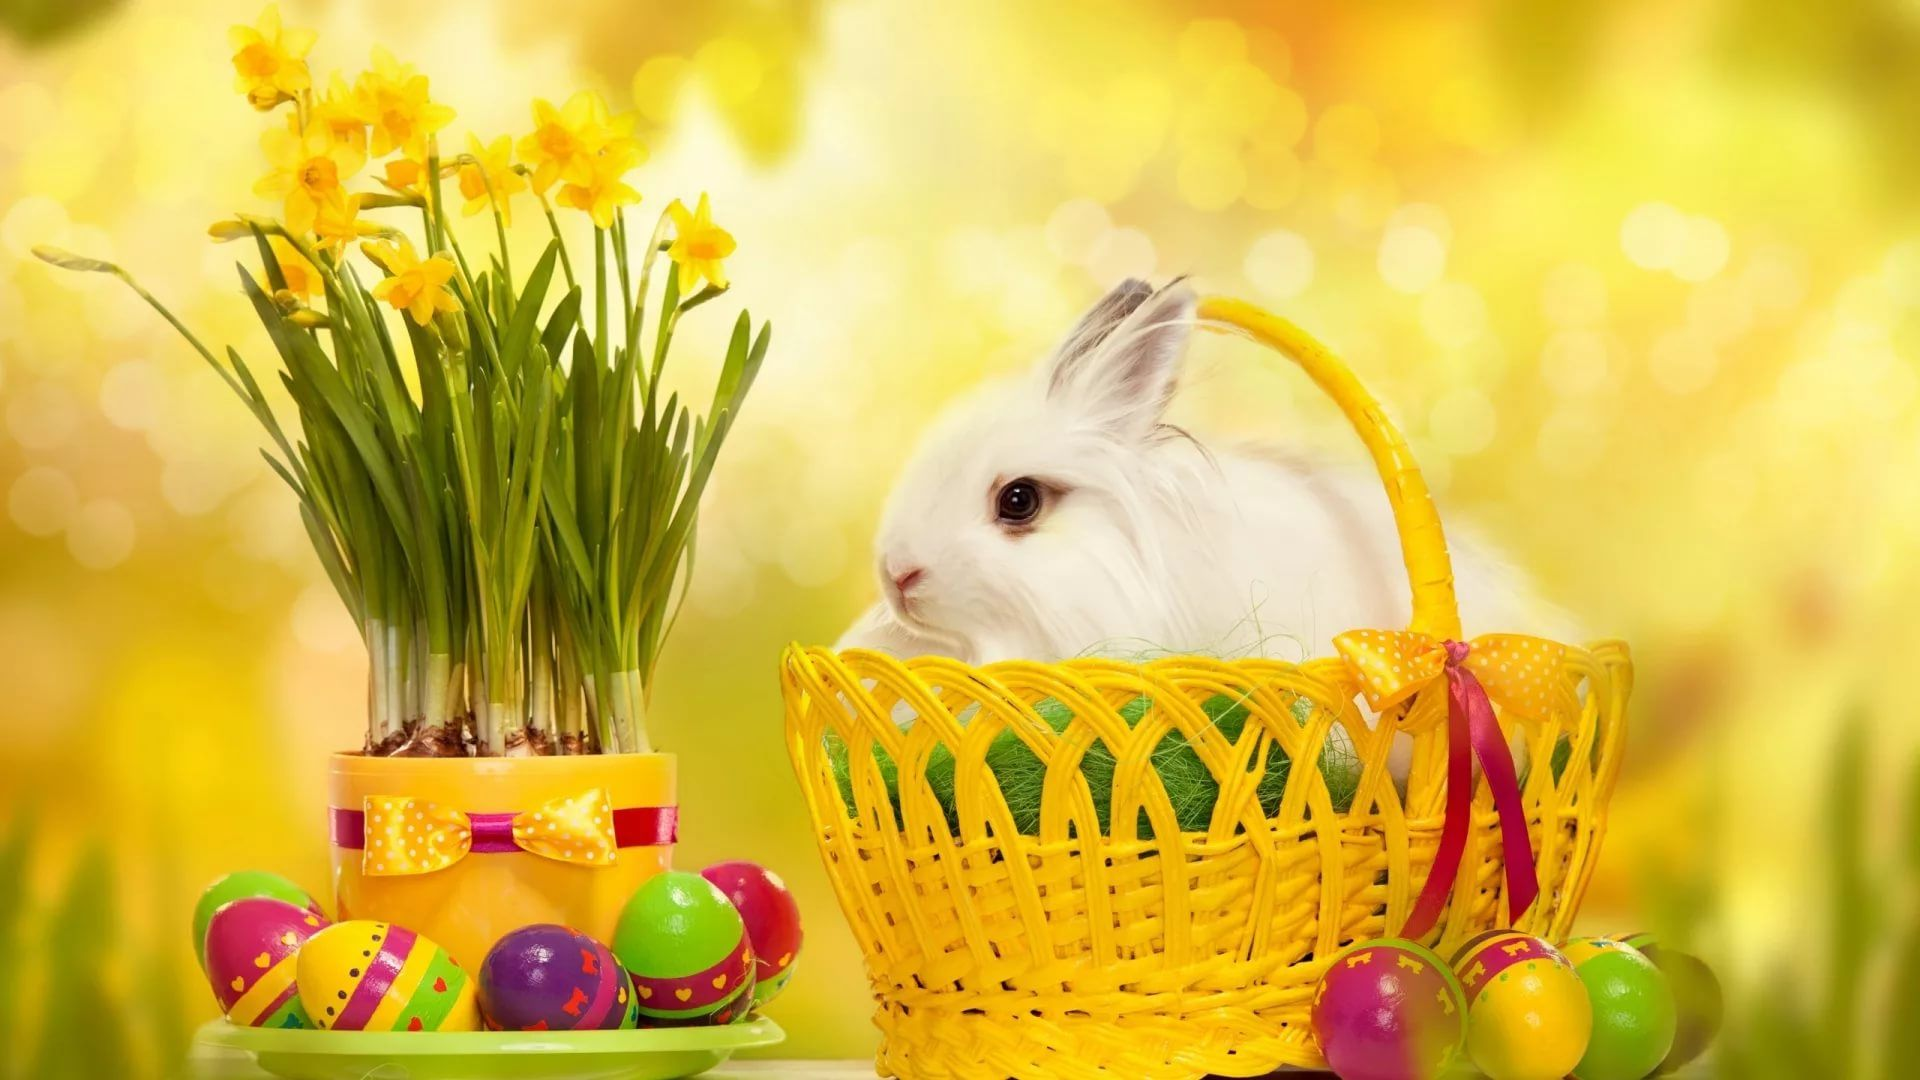 Happy Easter free download wallpaper